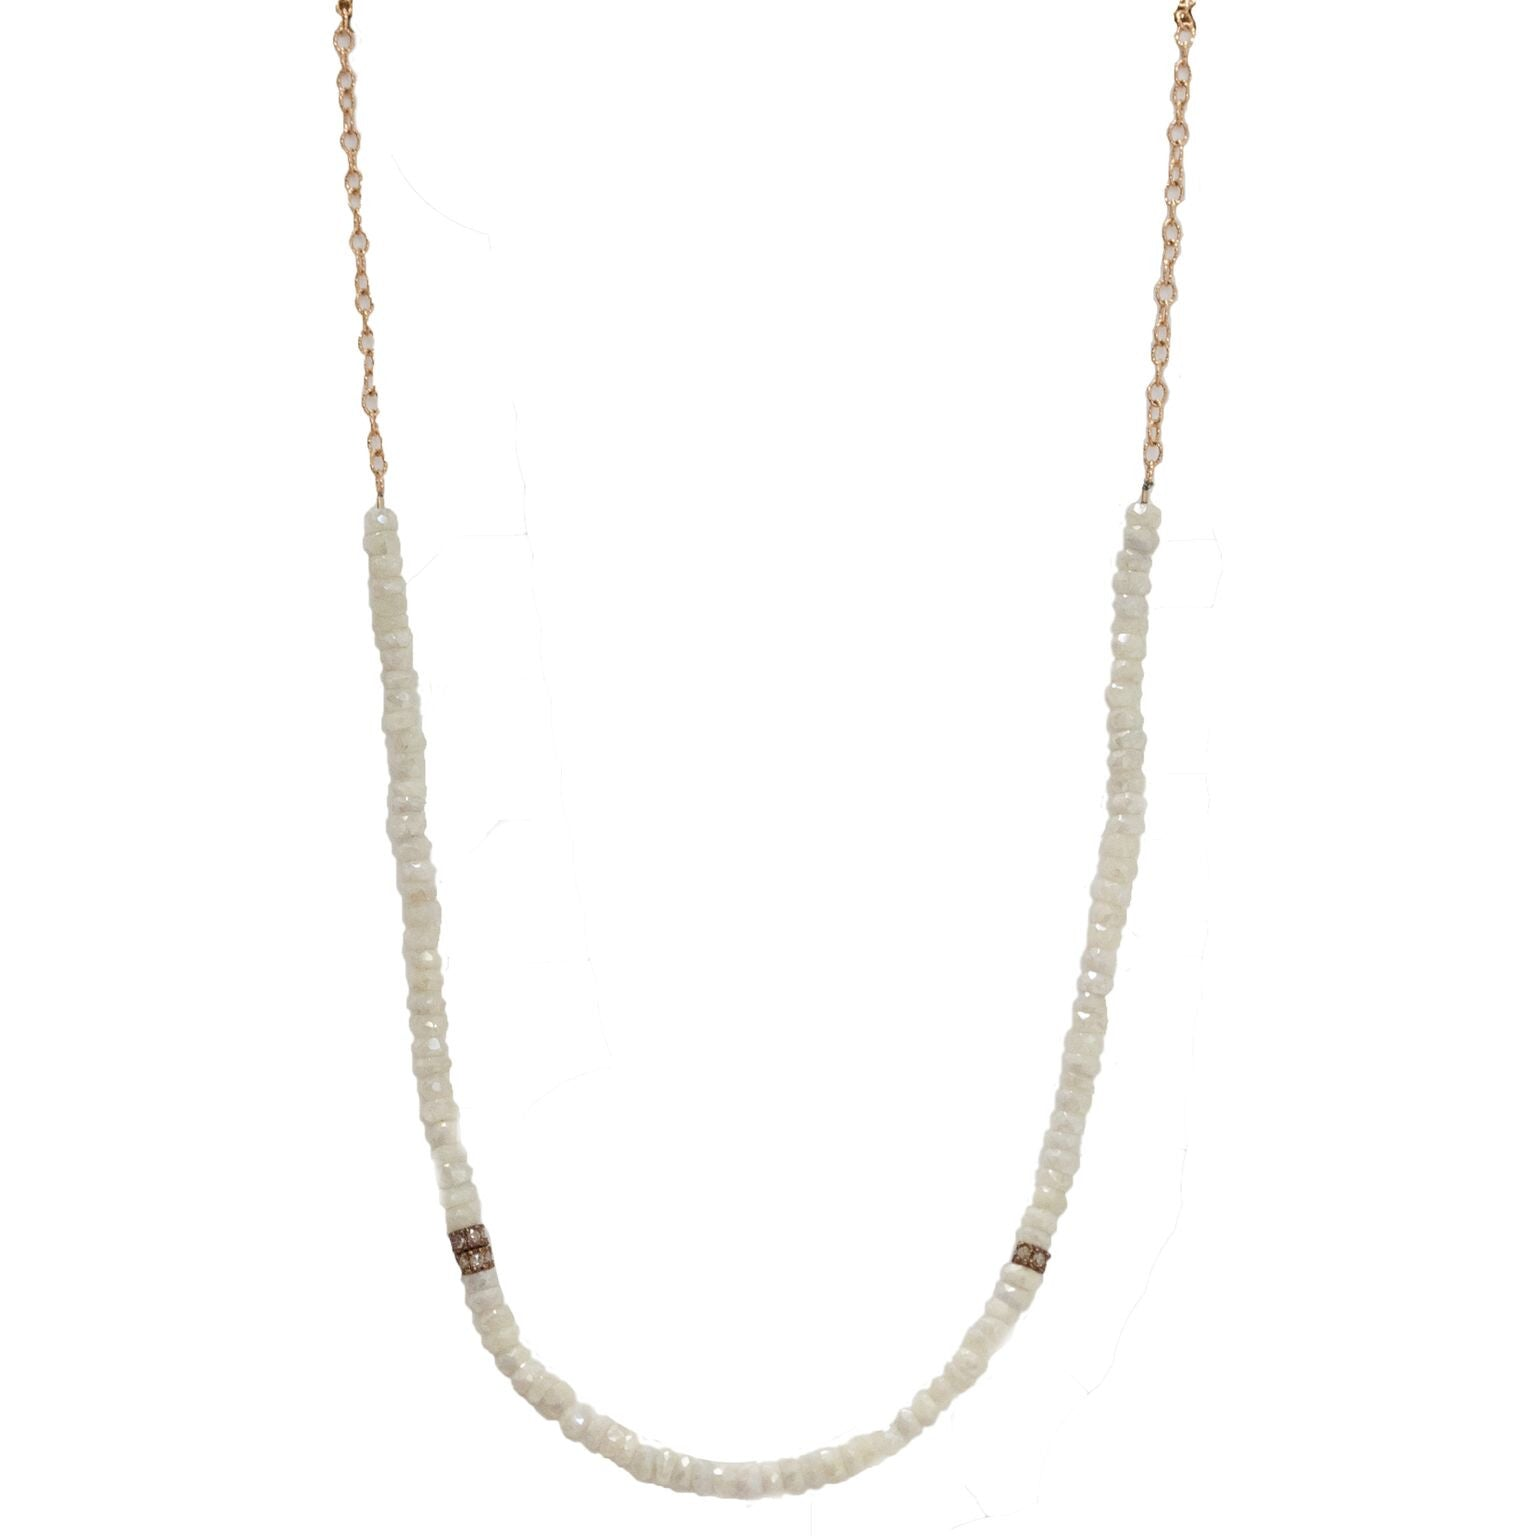 Nicolette Necklace Yellow Gold Silverite